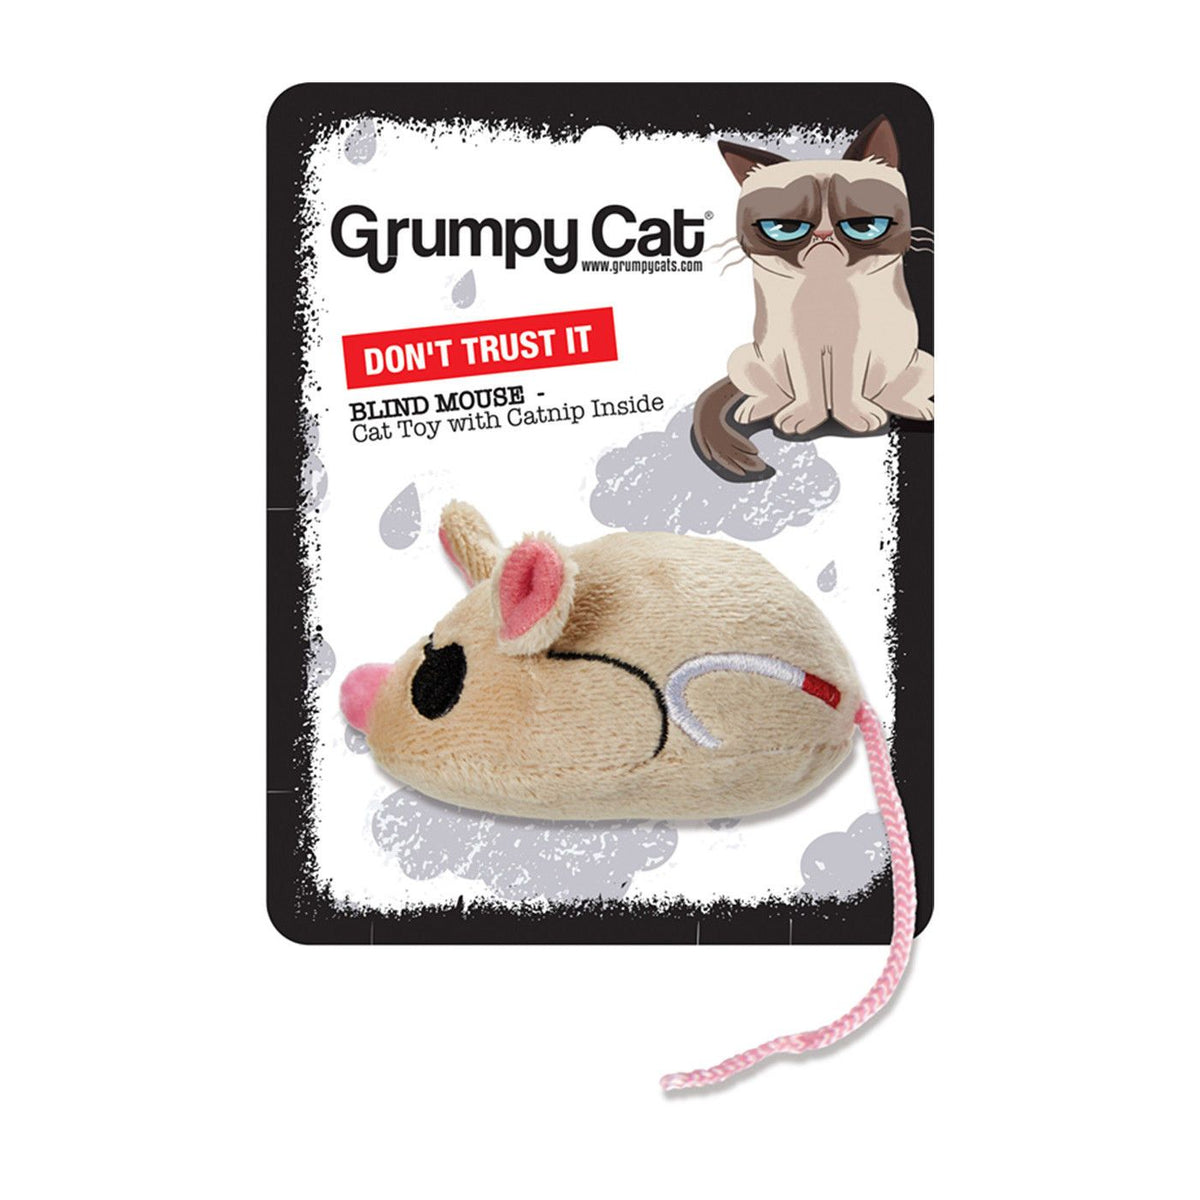 Grumpy Cat Blind Mouse Cat Toy - silva 5 pets